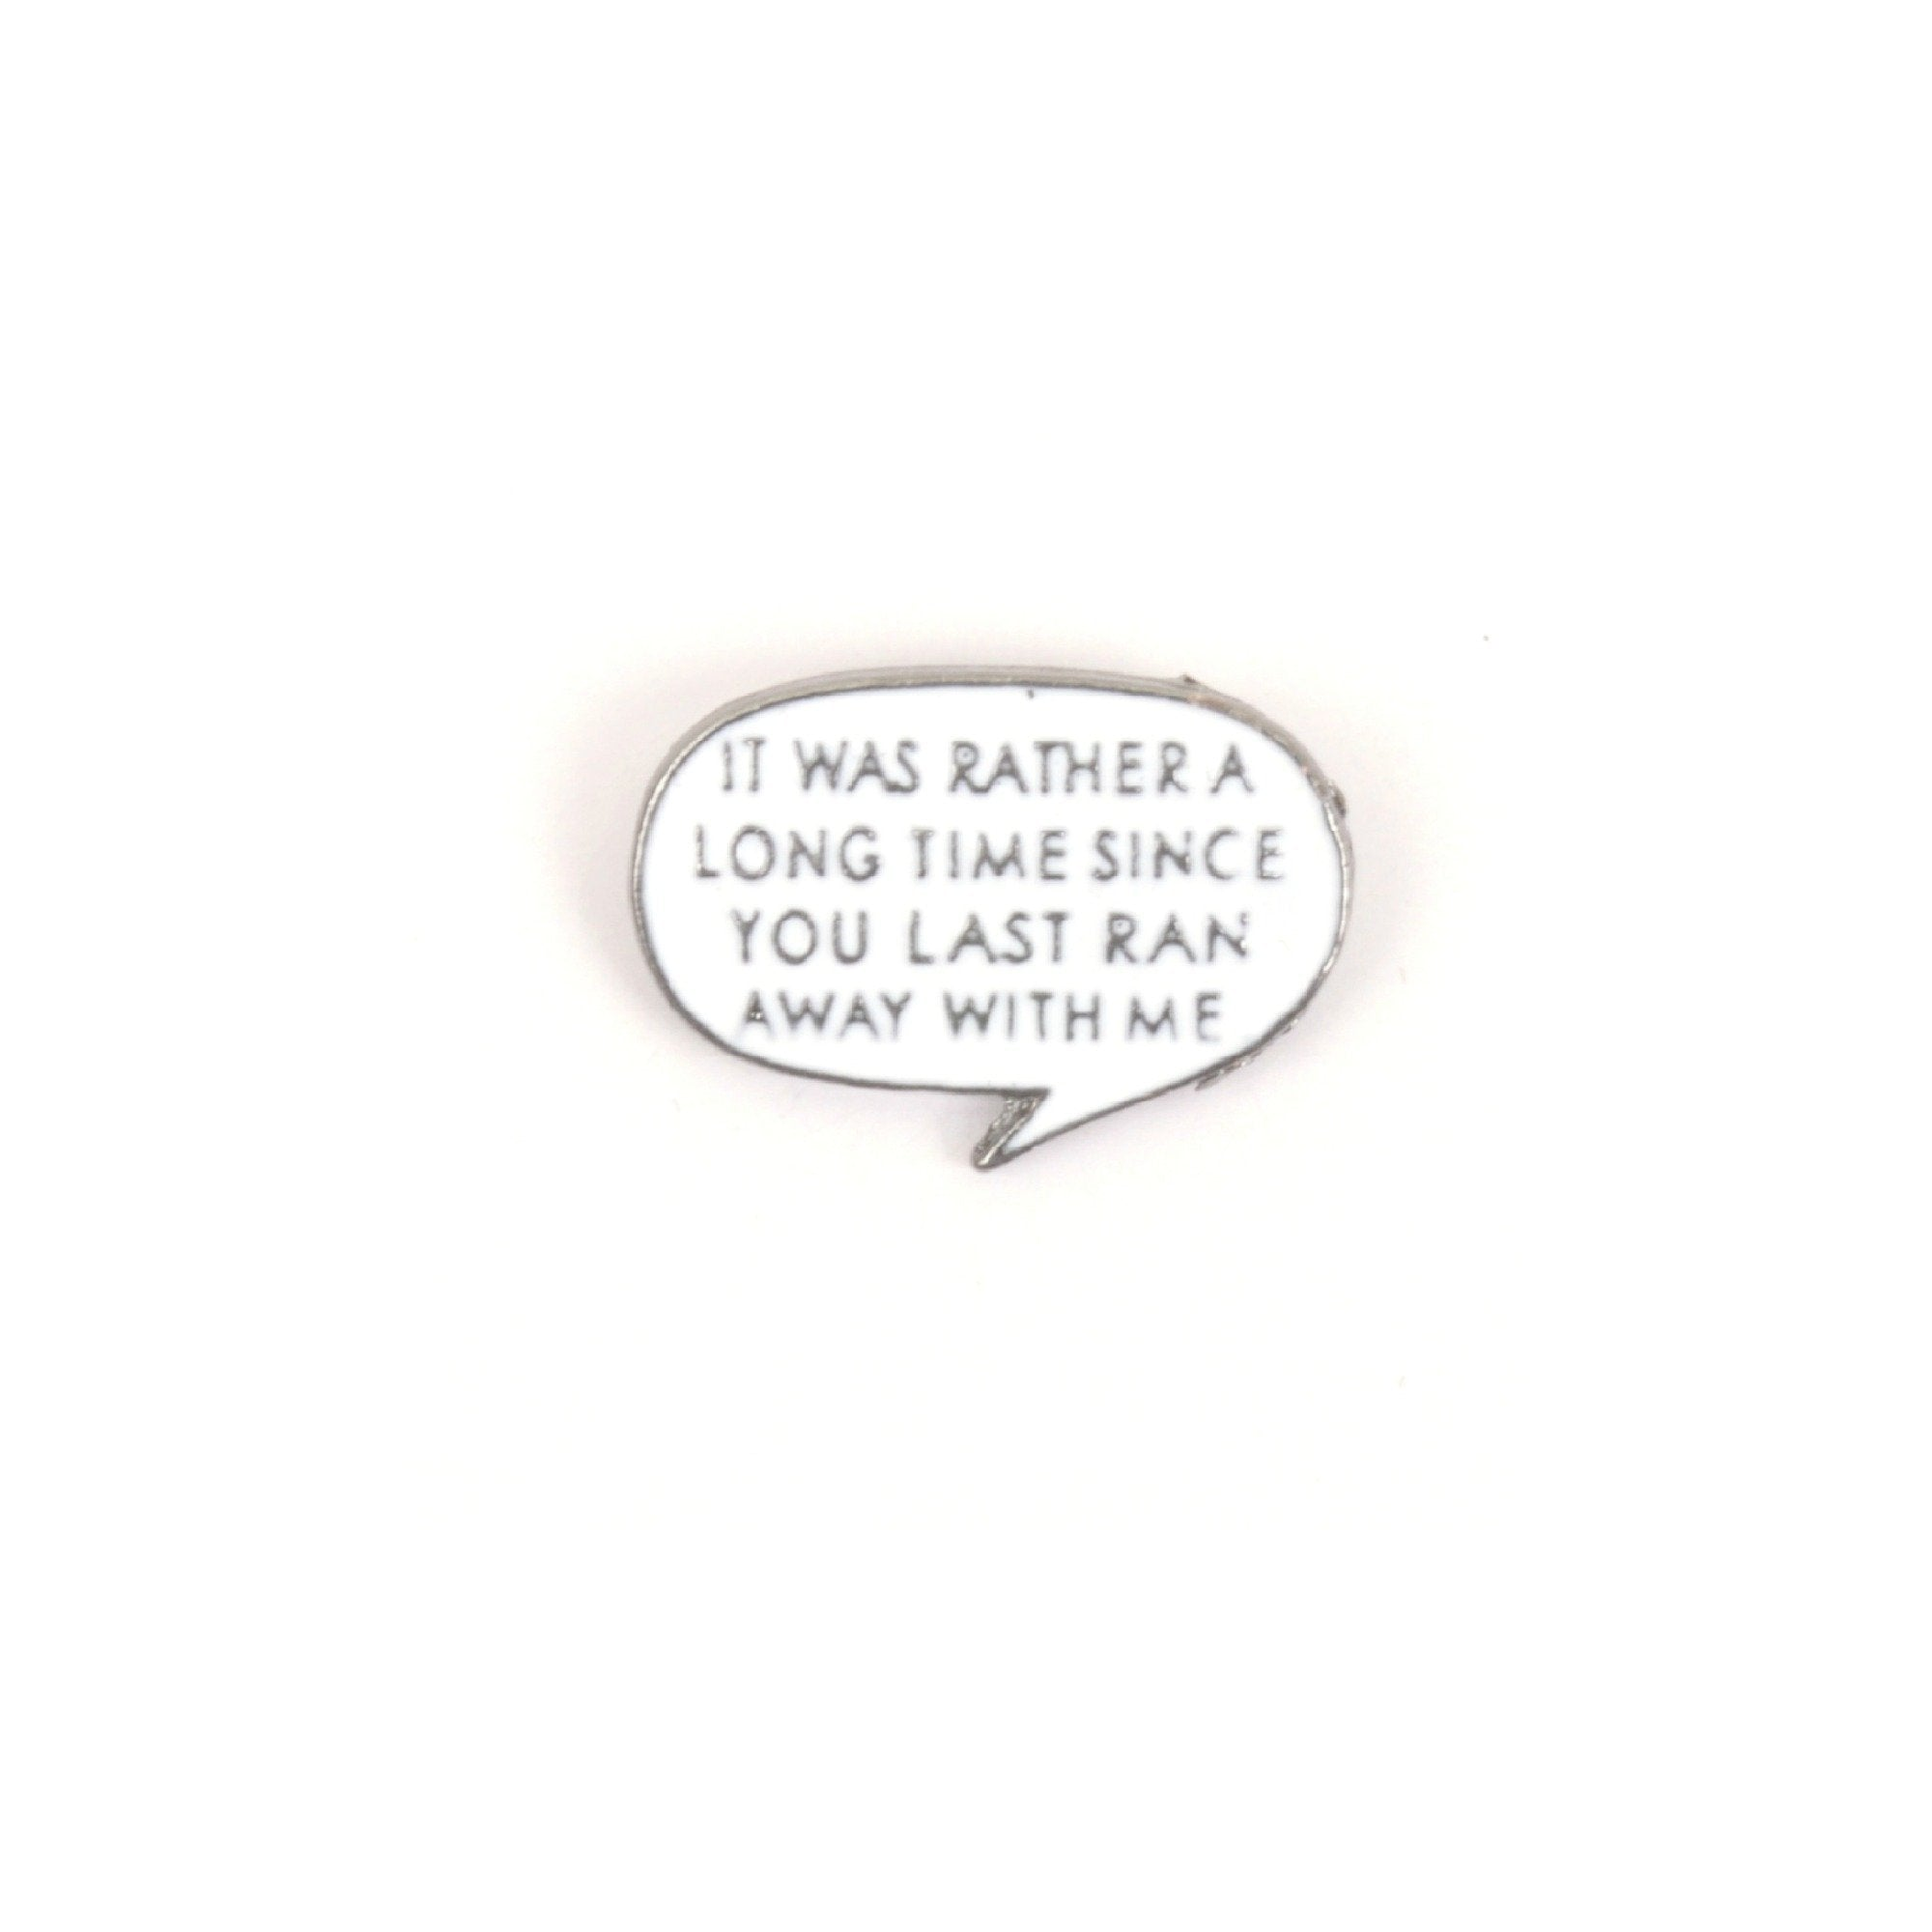 Run Away With Me Speech Bubble Cute Enamel Lapel Pin Badge - Minimum Mouse